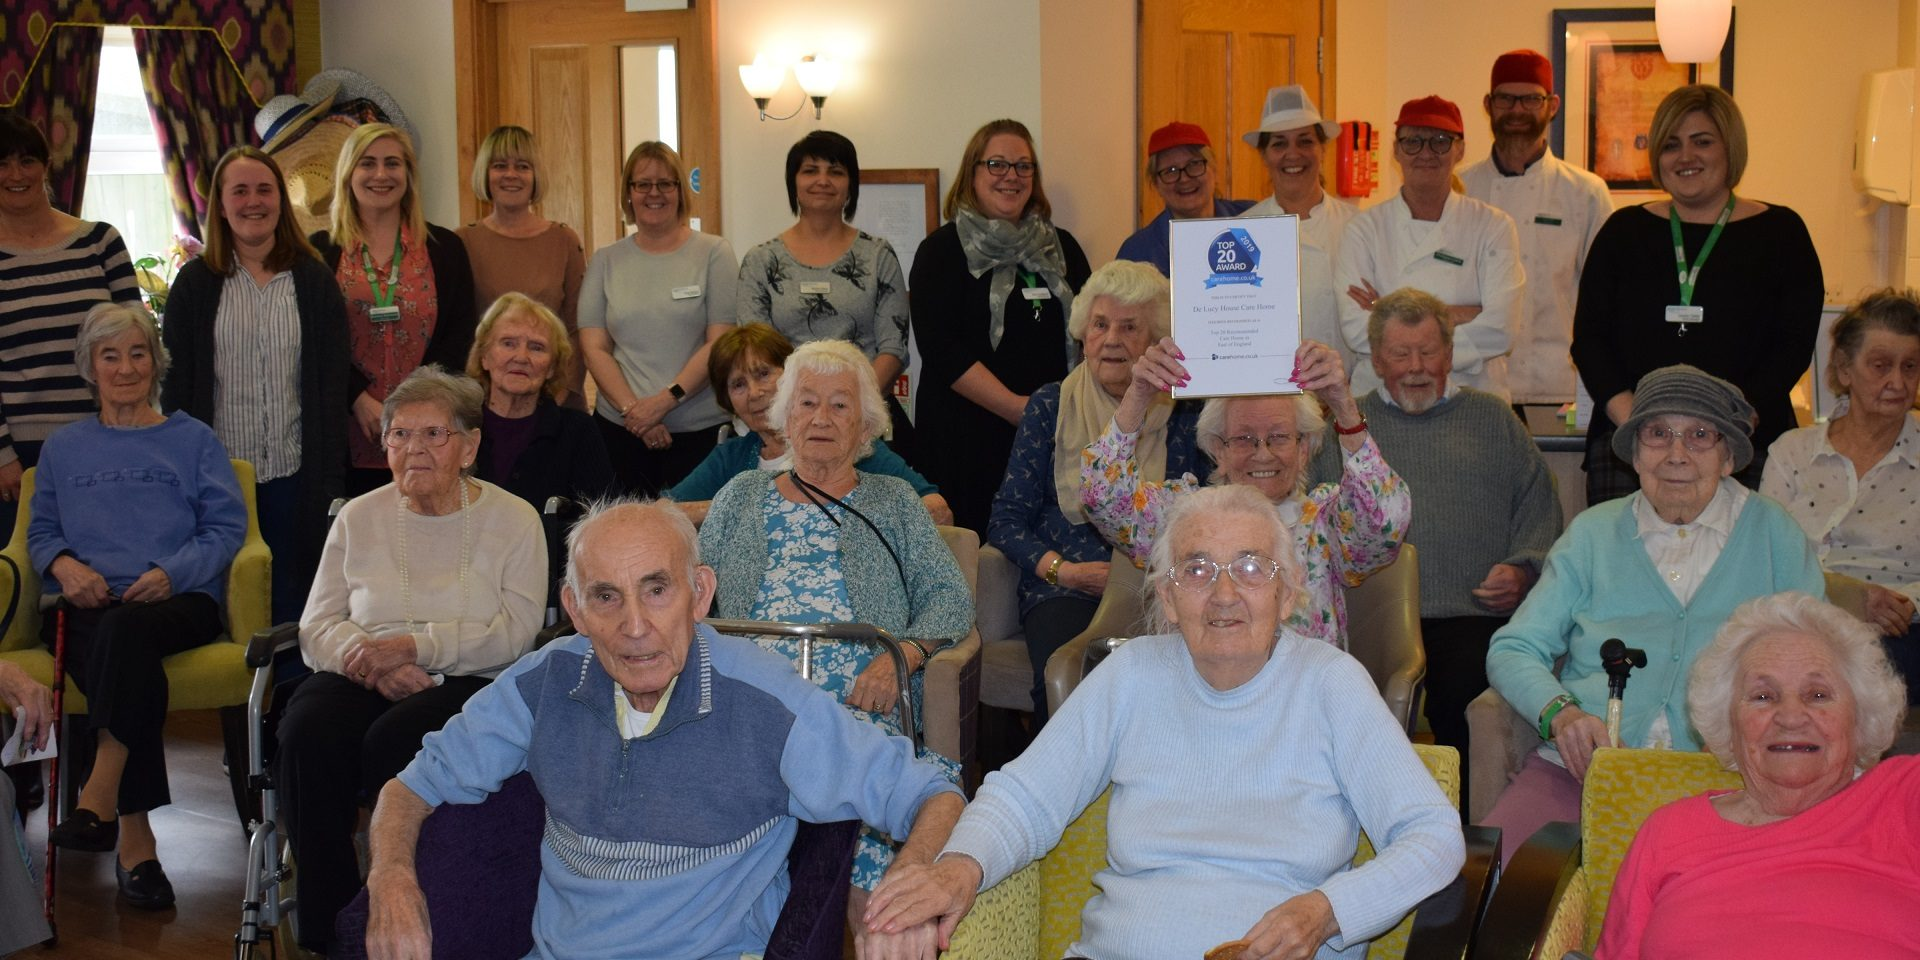 Top 20 Care Home Award for De Lucy House Care Home in Diss